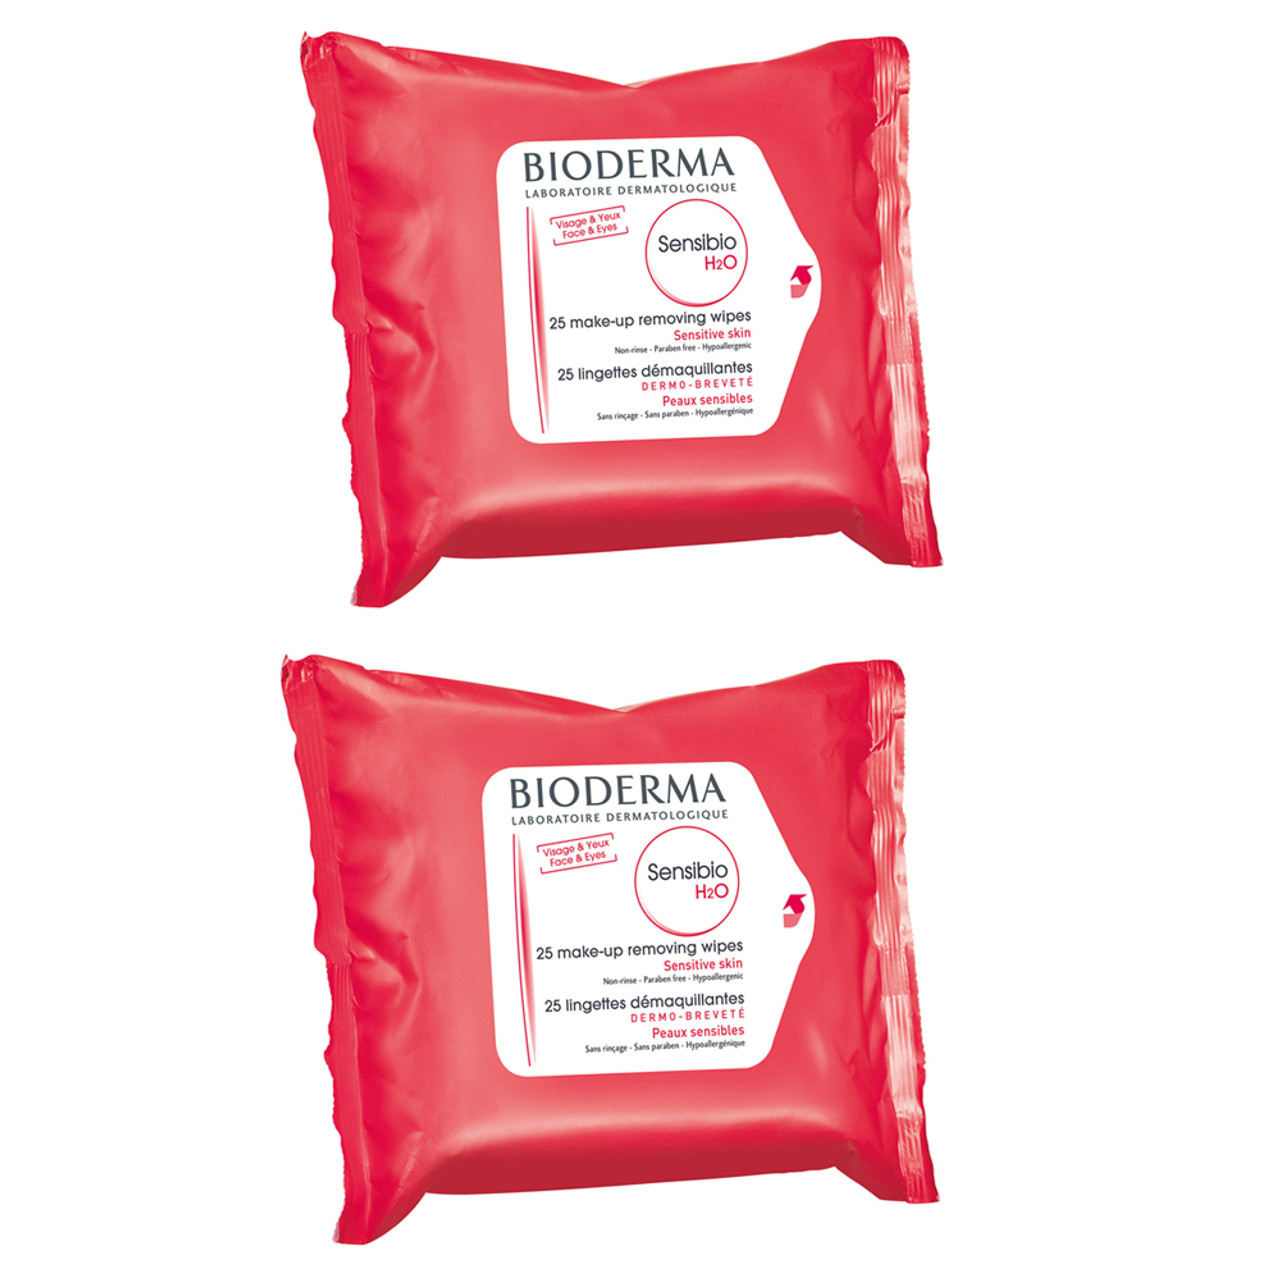 Bioderma Sensibio H2O Wipes Single